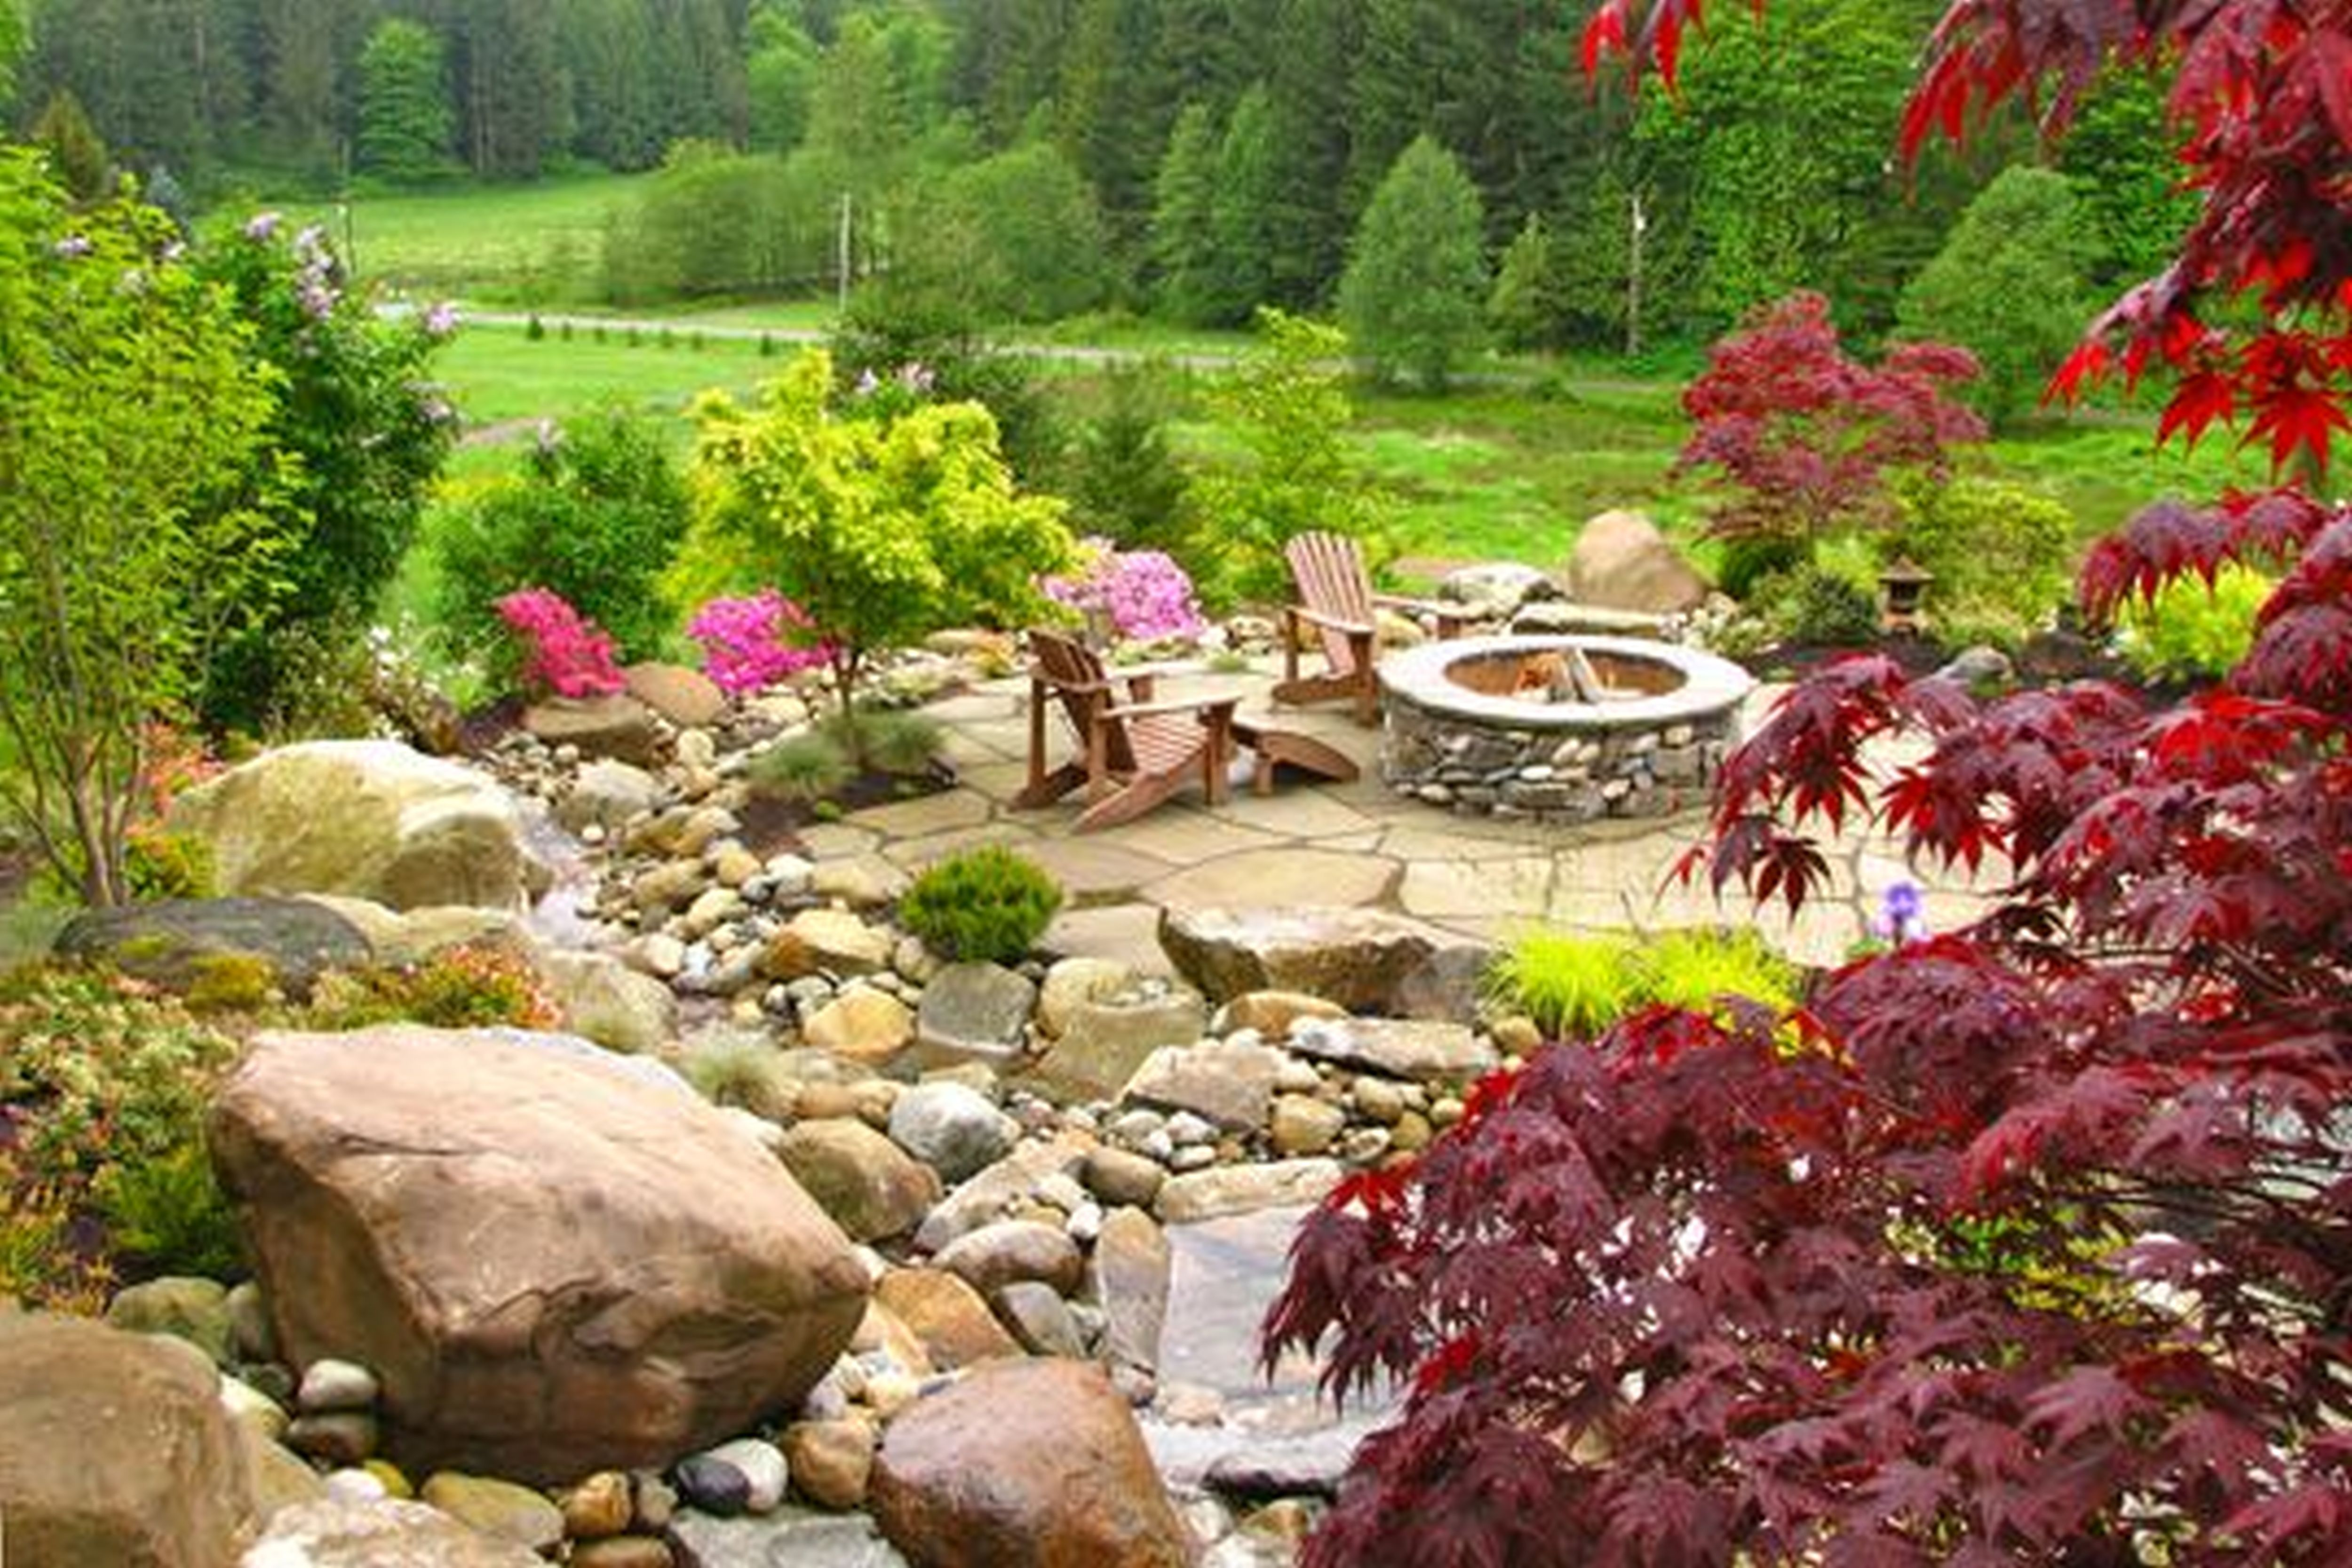 maple tree evergreens lots of textures rocks firepit  For the